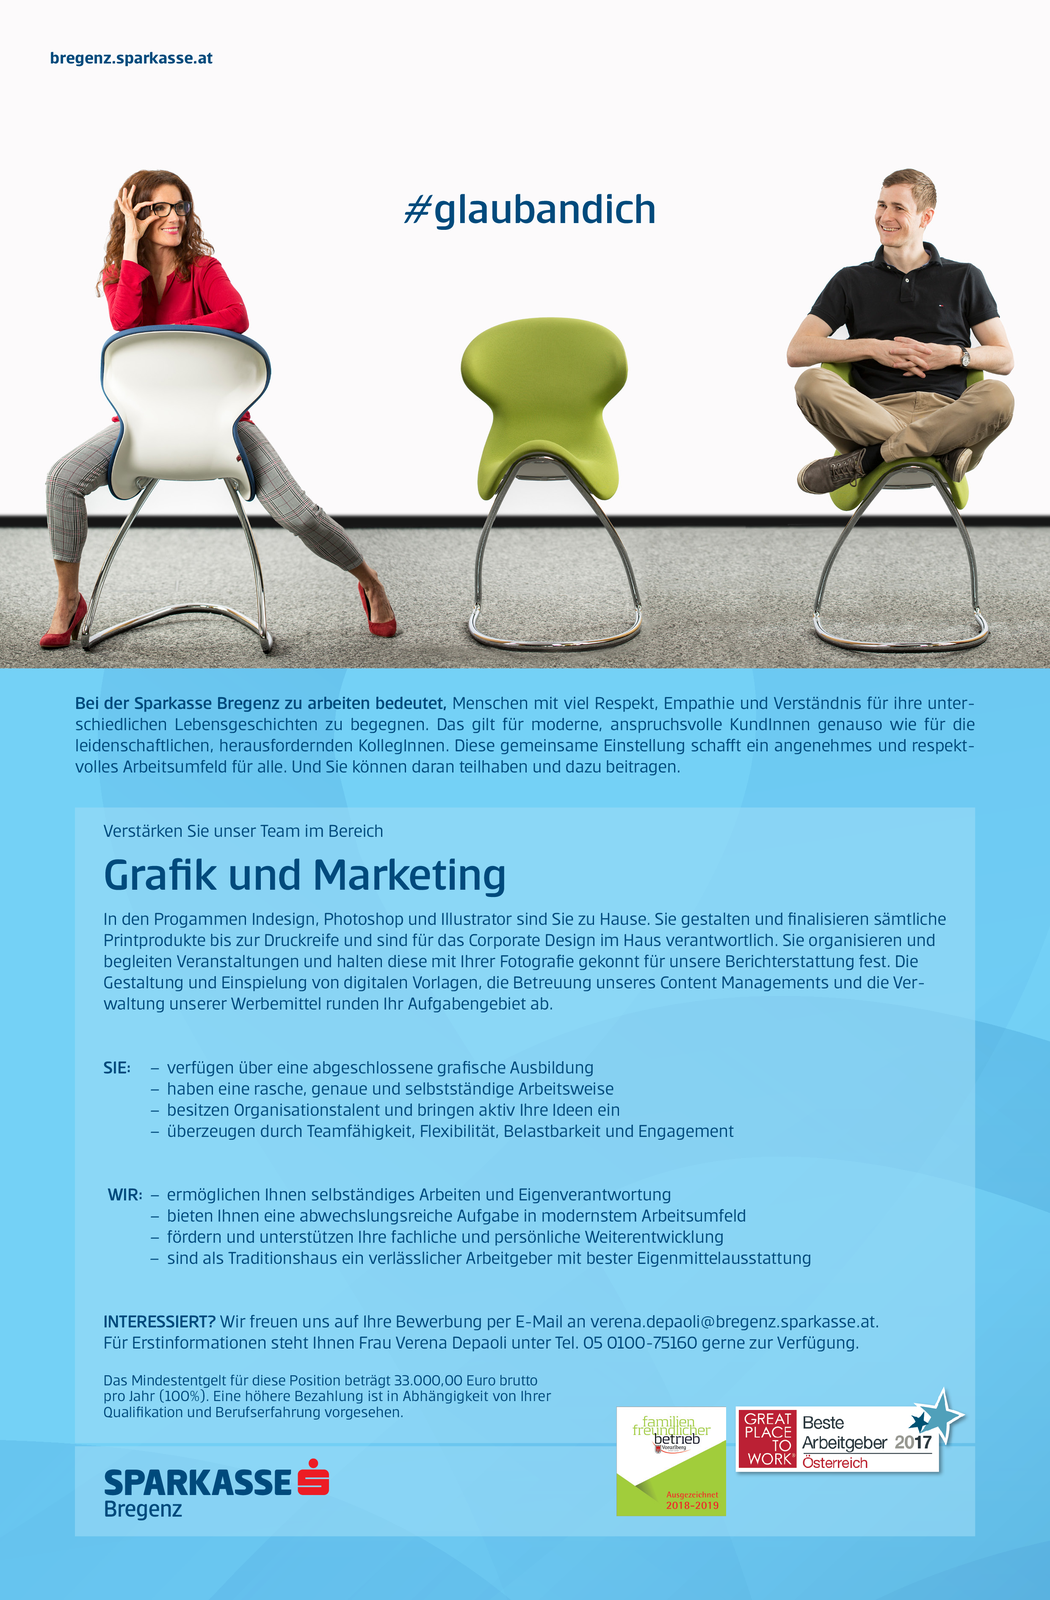 Grafik und Marketing